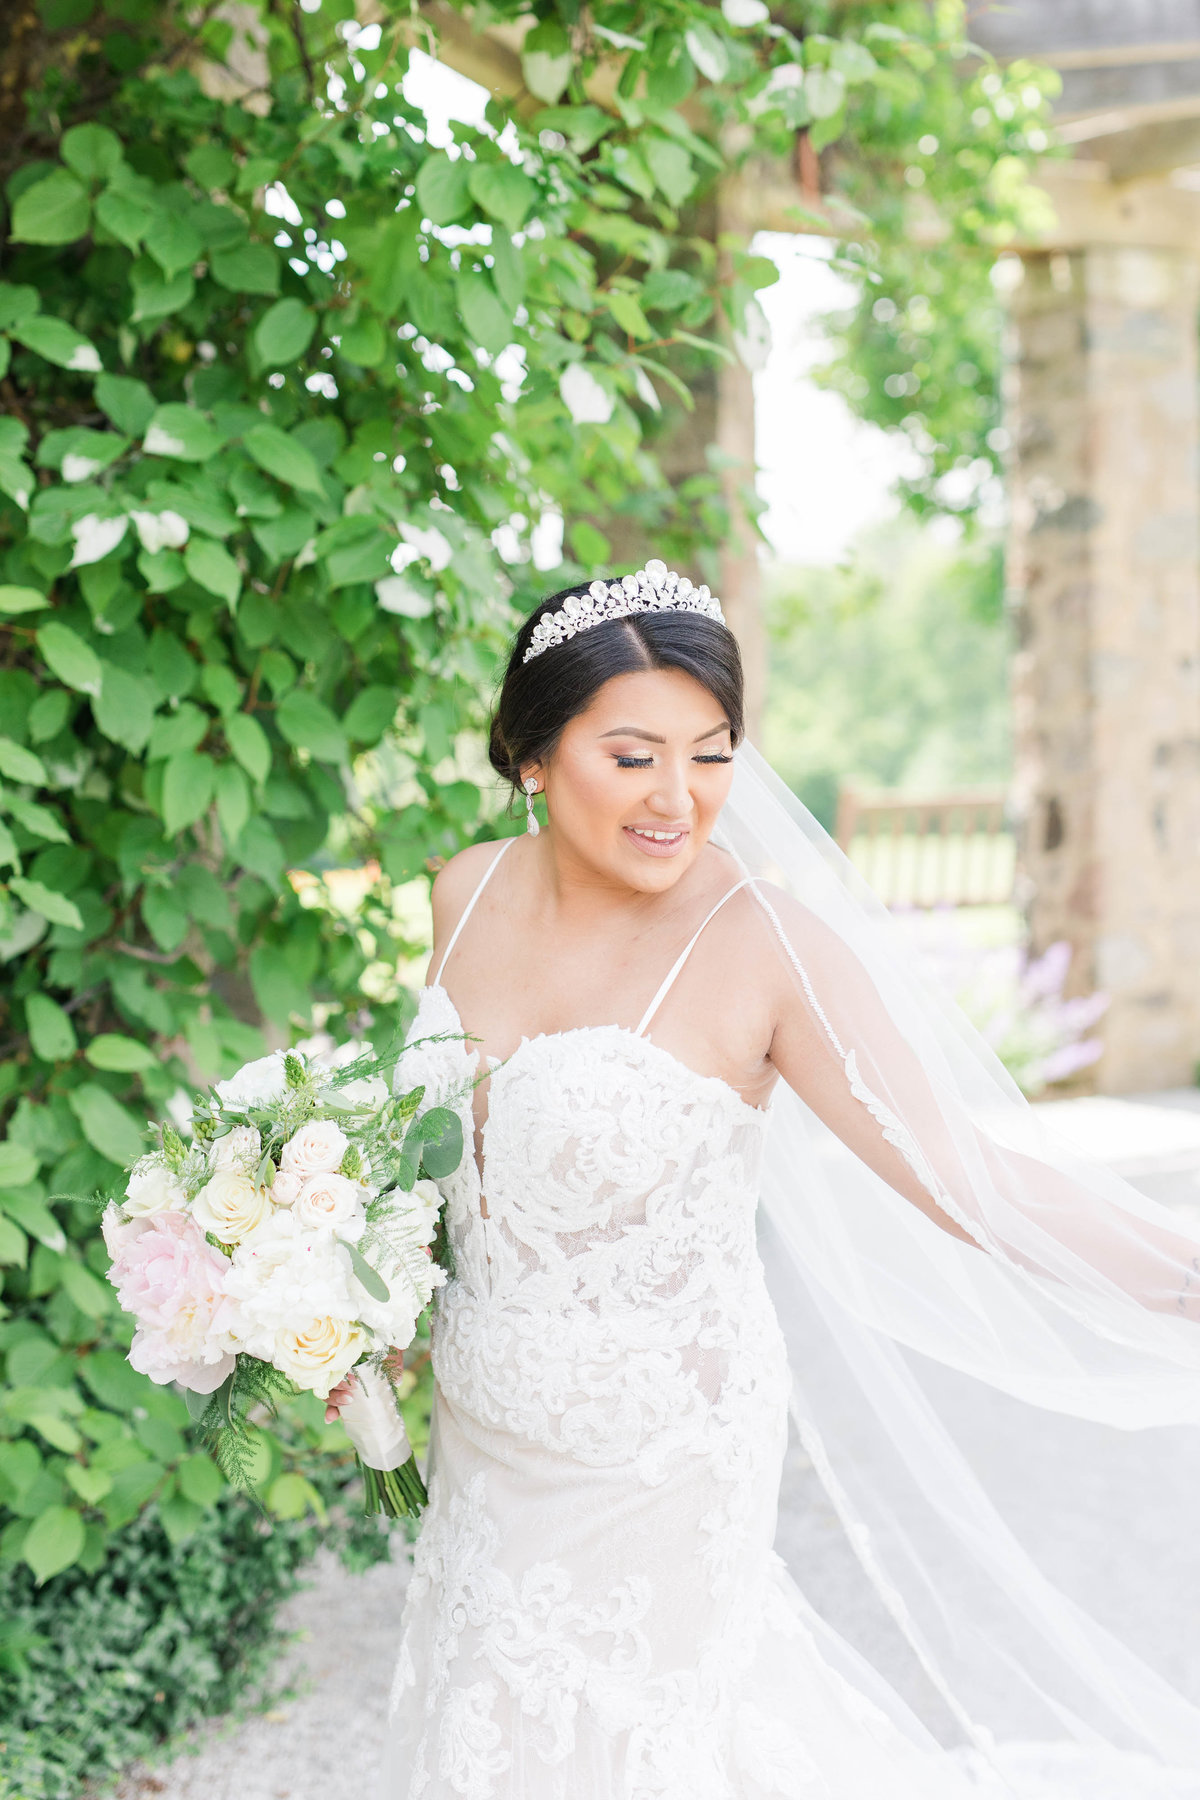 summer-wisconsin-wedding-katie-schubert-wisconsin-wedding-photographer-73